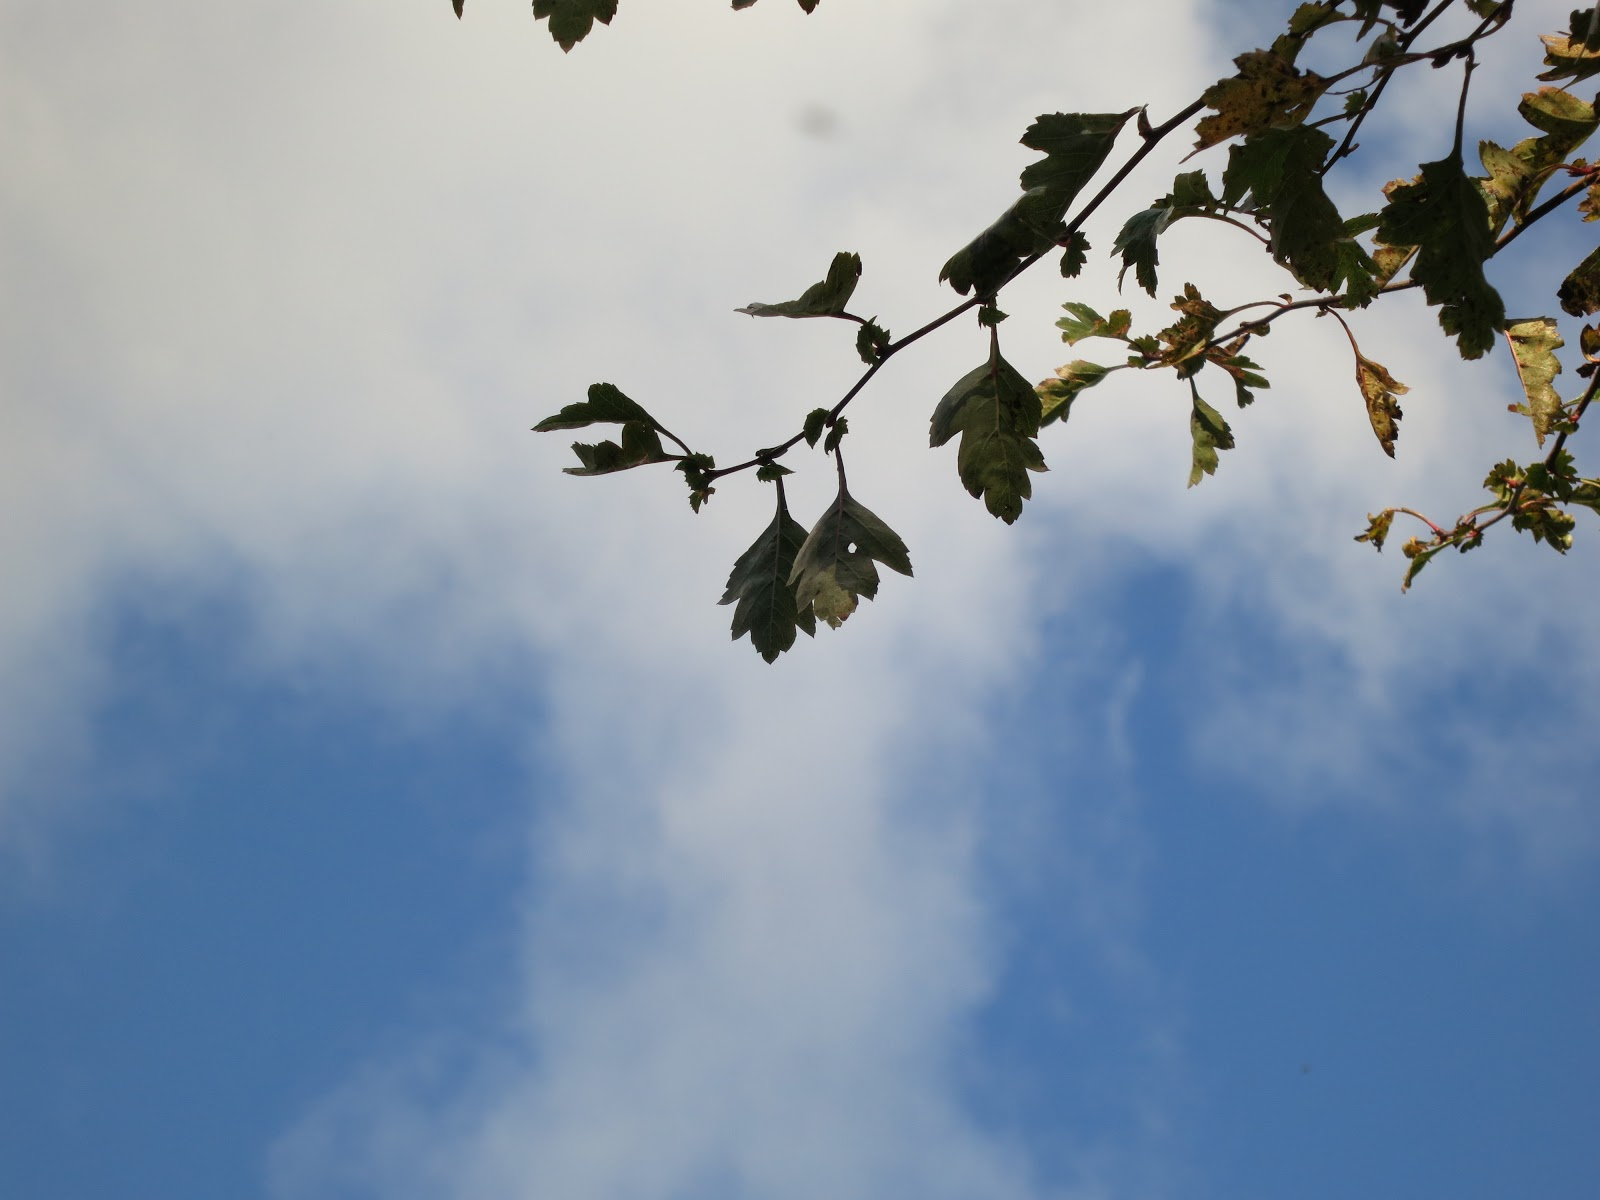 Hawthorn leaves against a blue sky with light, white clouds